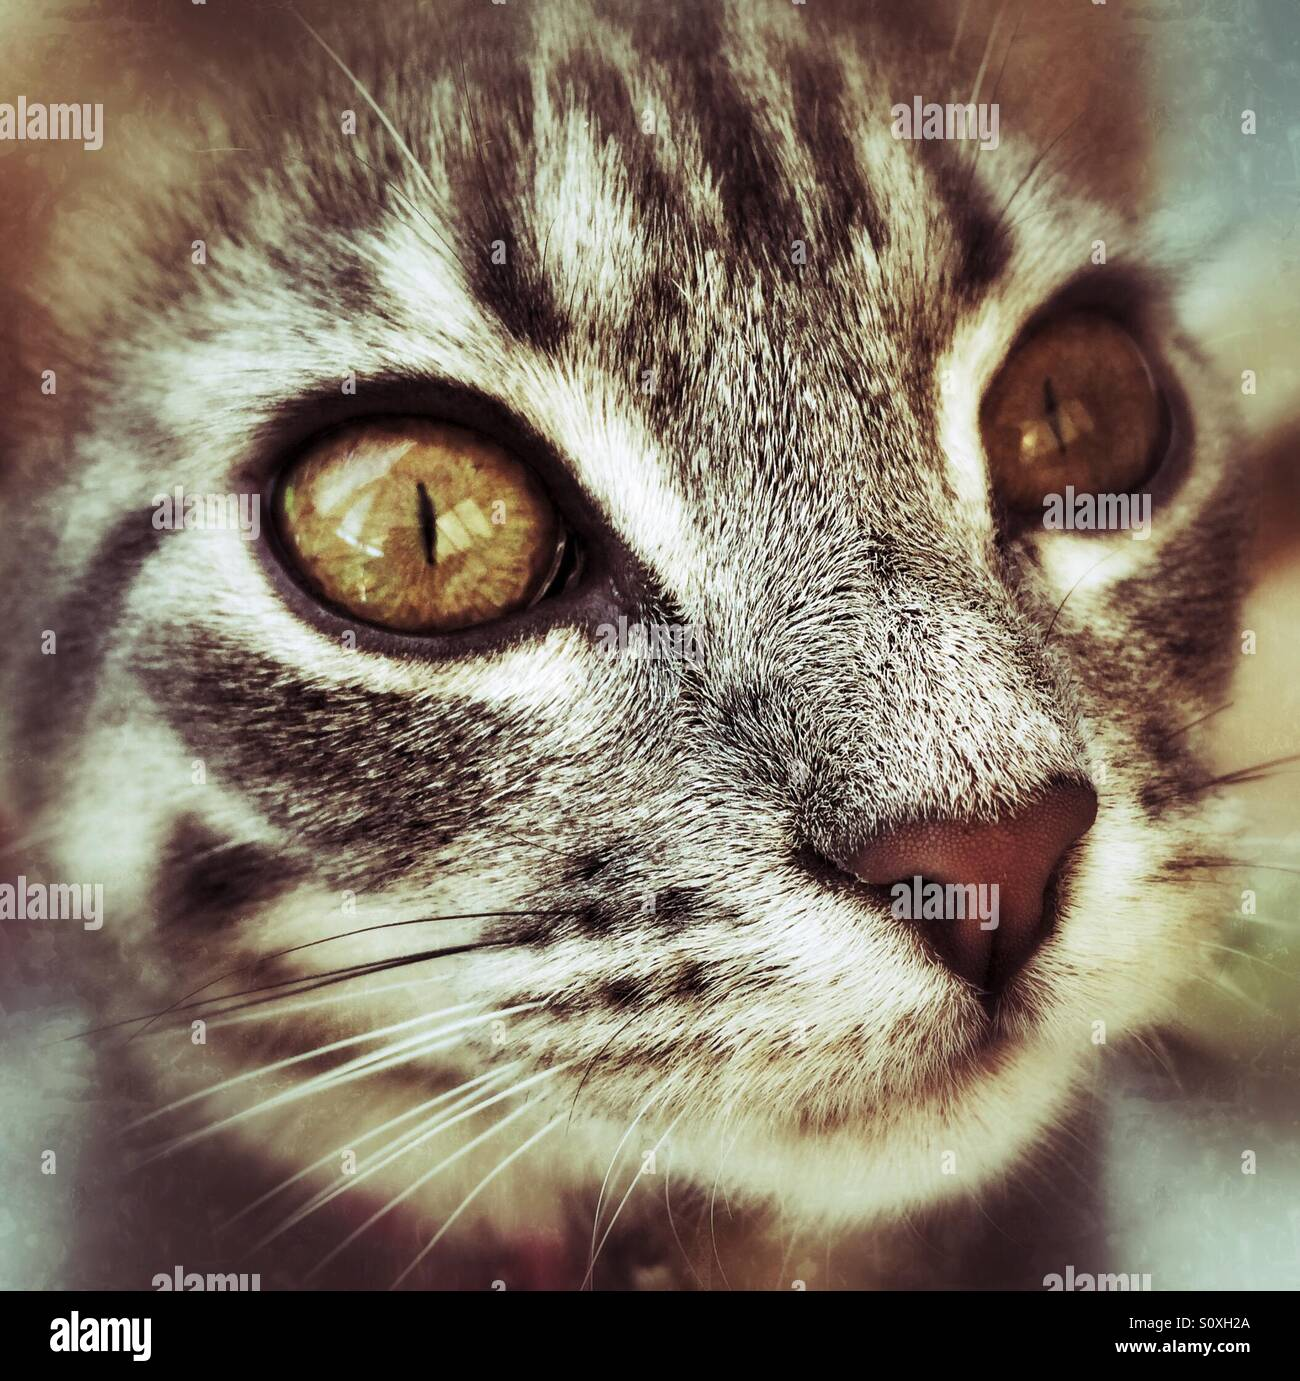 A close up of a beautiful tabby cat - Stock Image